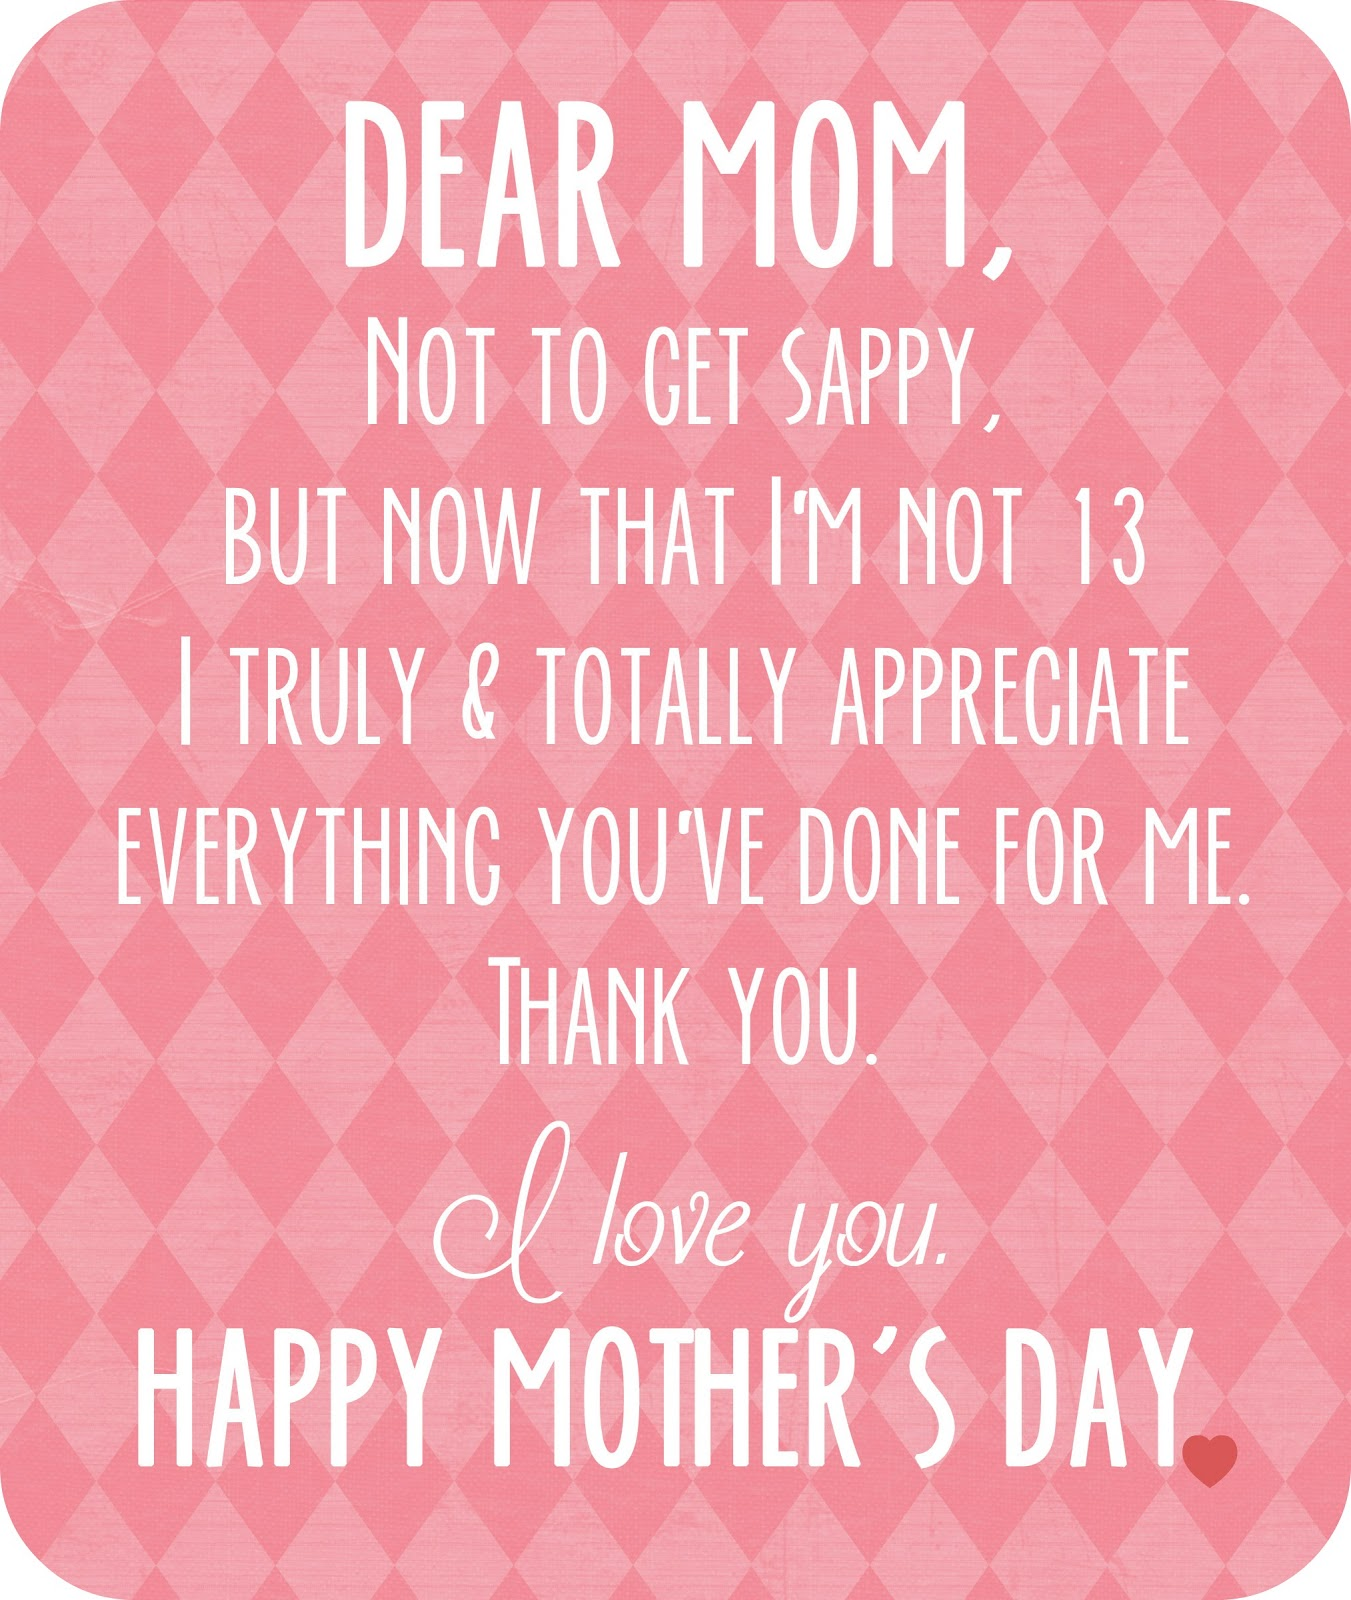 I Love You Quotes To Mom : crazyloucreations.blog...crazylou: Happy Mothers Day! {Free Printable